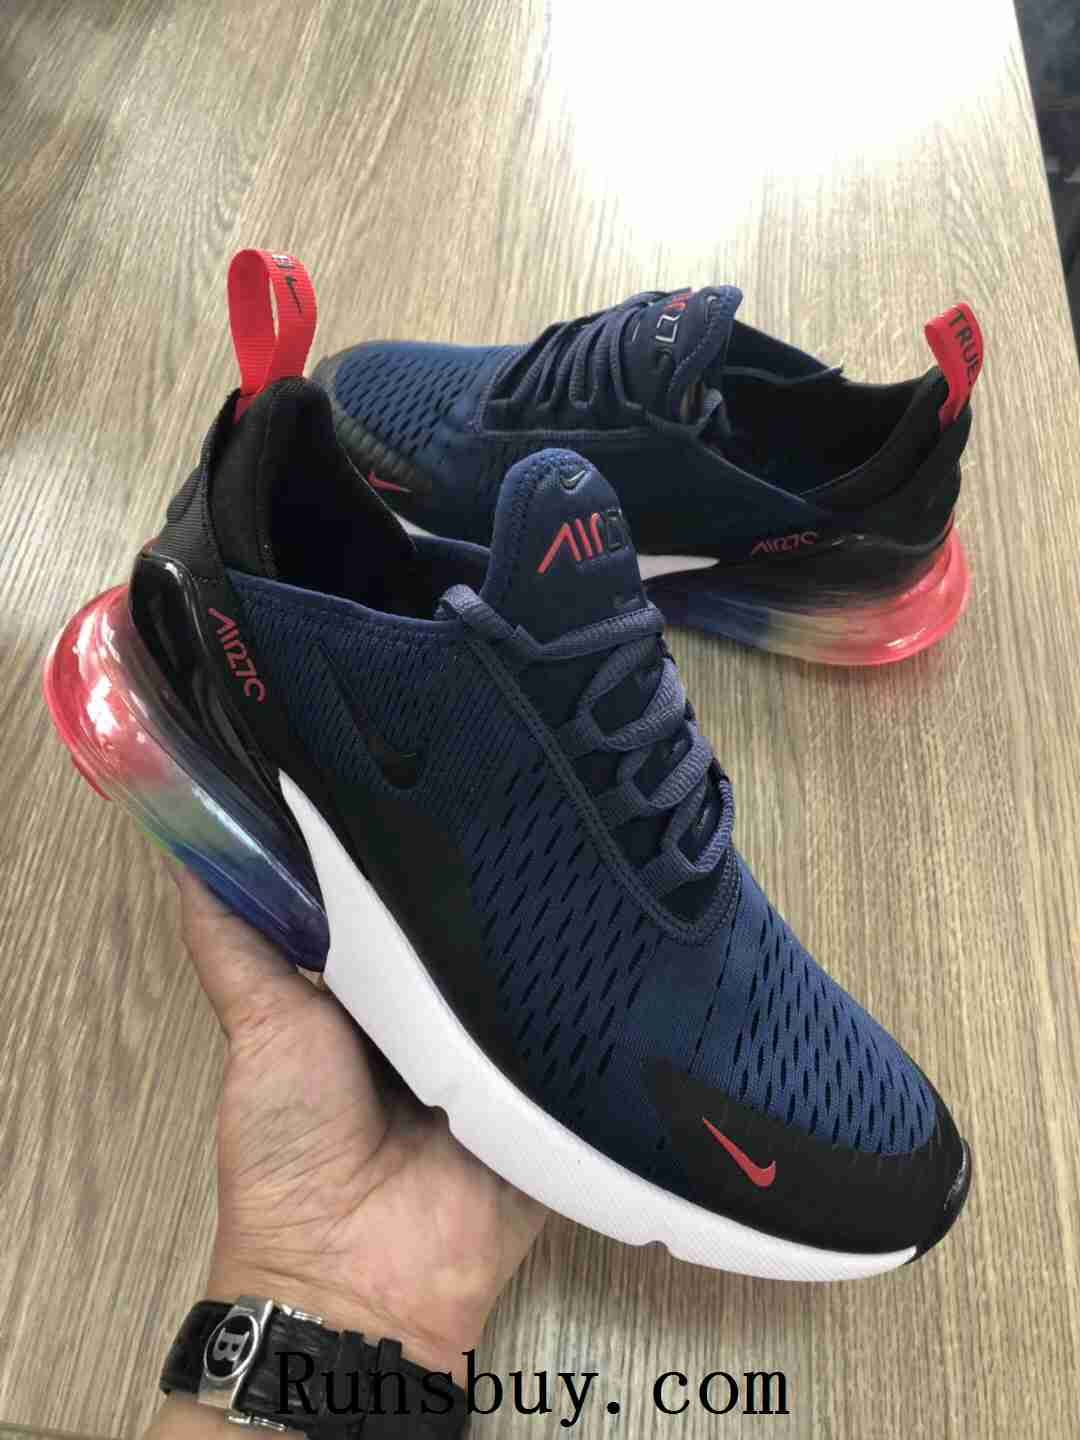 a280574ff39 Nike Air Max 270 Betrue Blue Black Rainbow Women Men Running Shoes ...